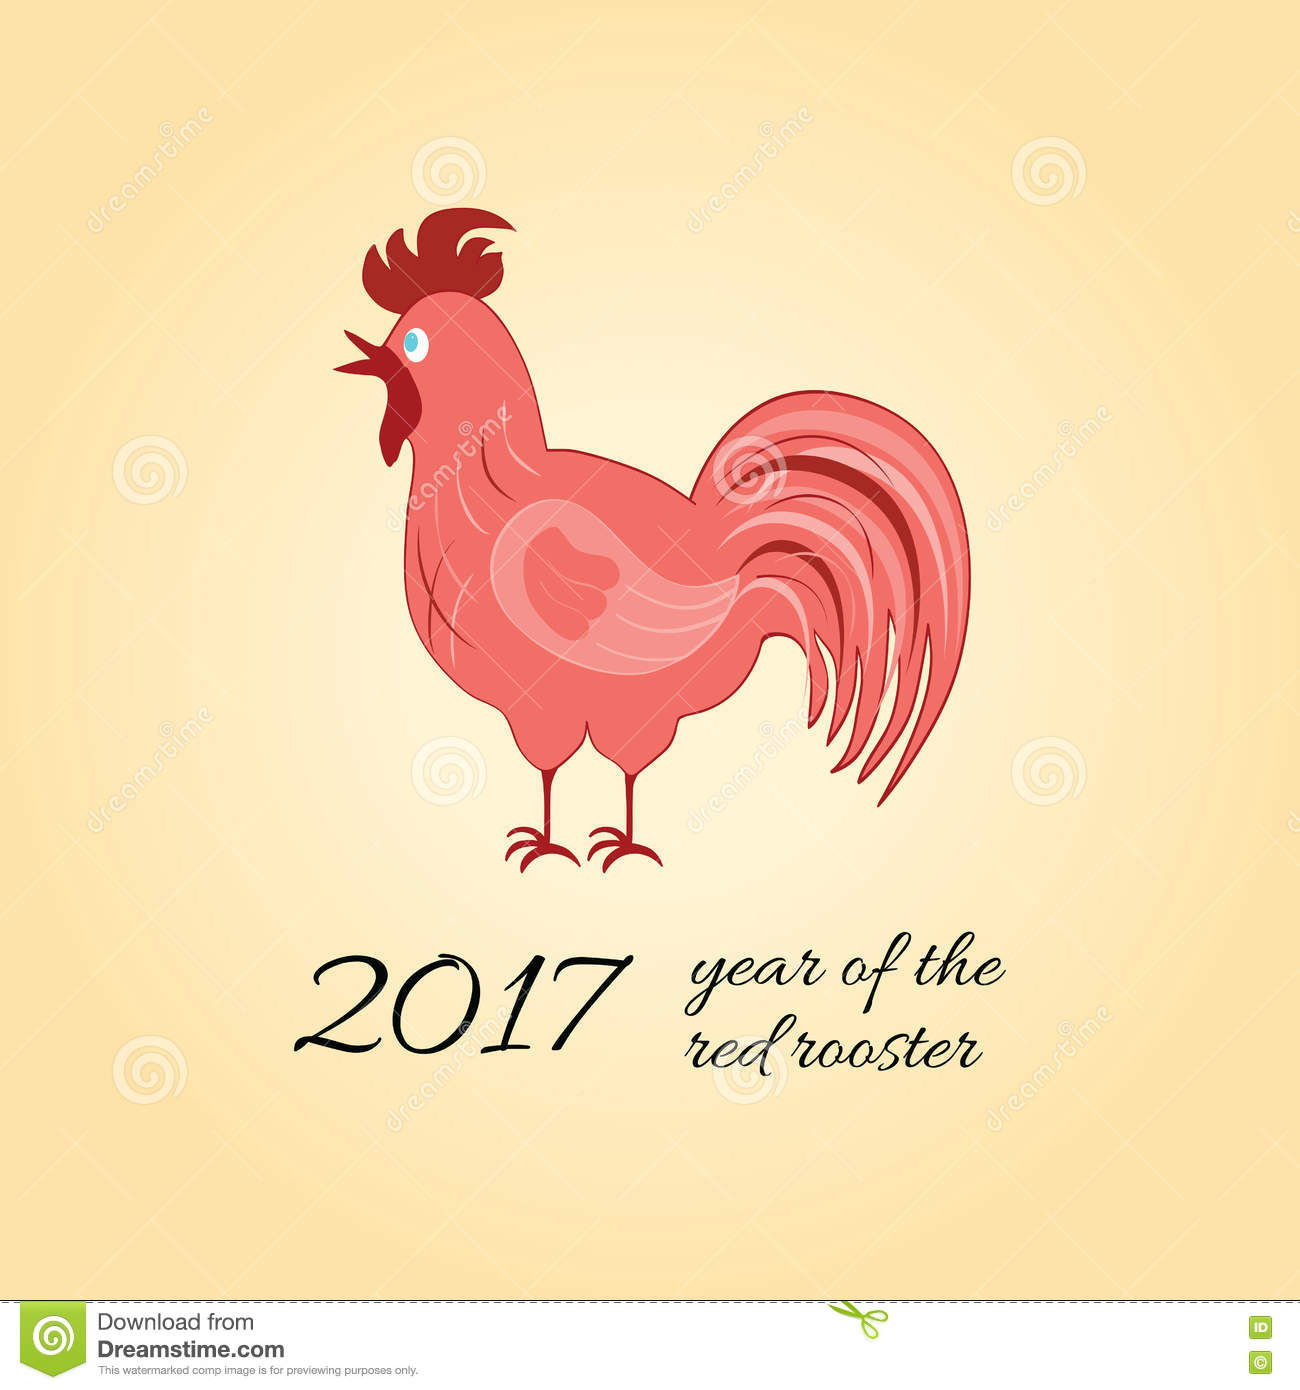 Chinese Calendar Illustration : Vector illustration of rooster symbol chinese calendar